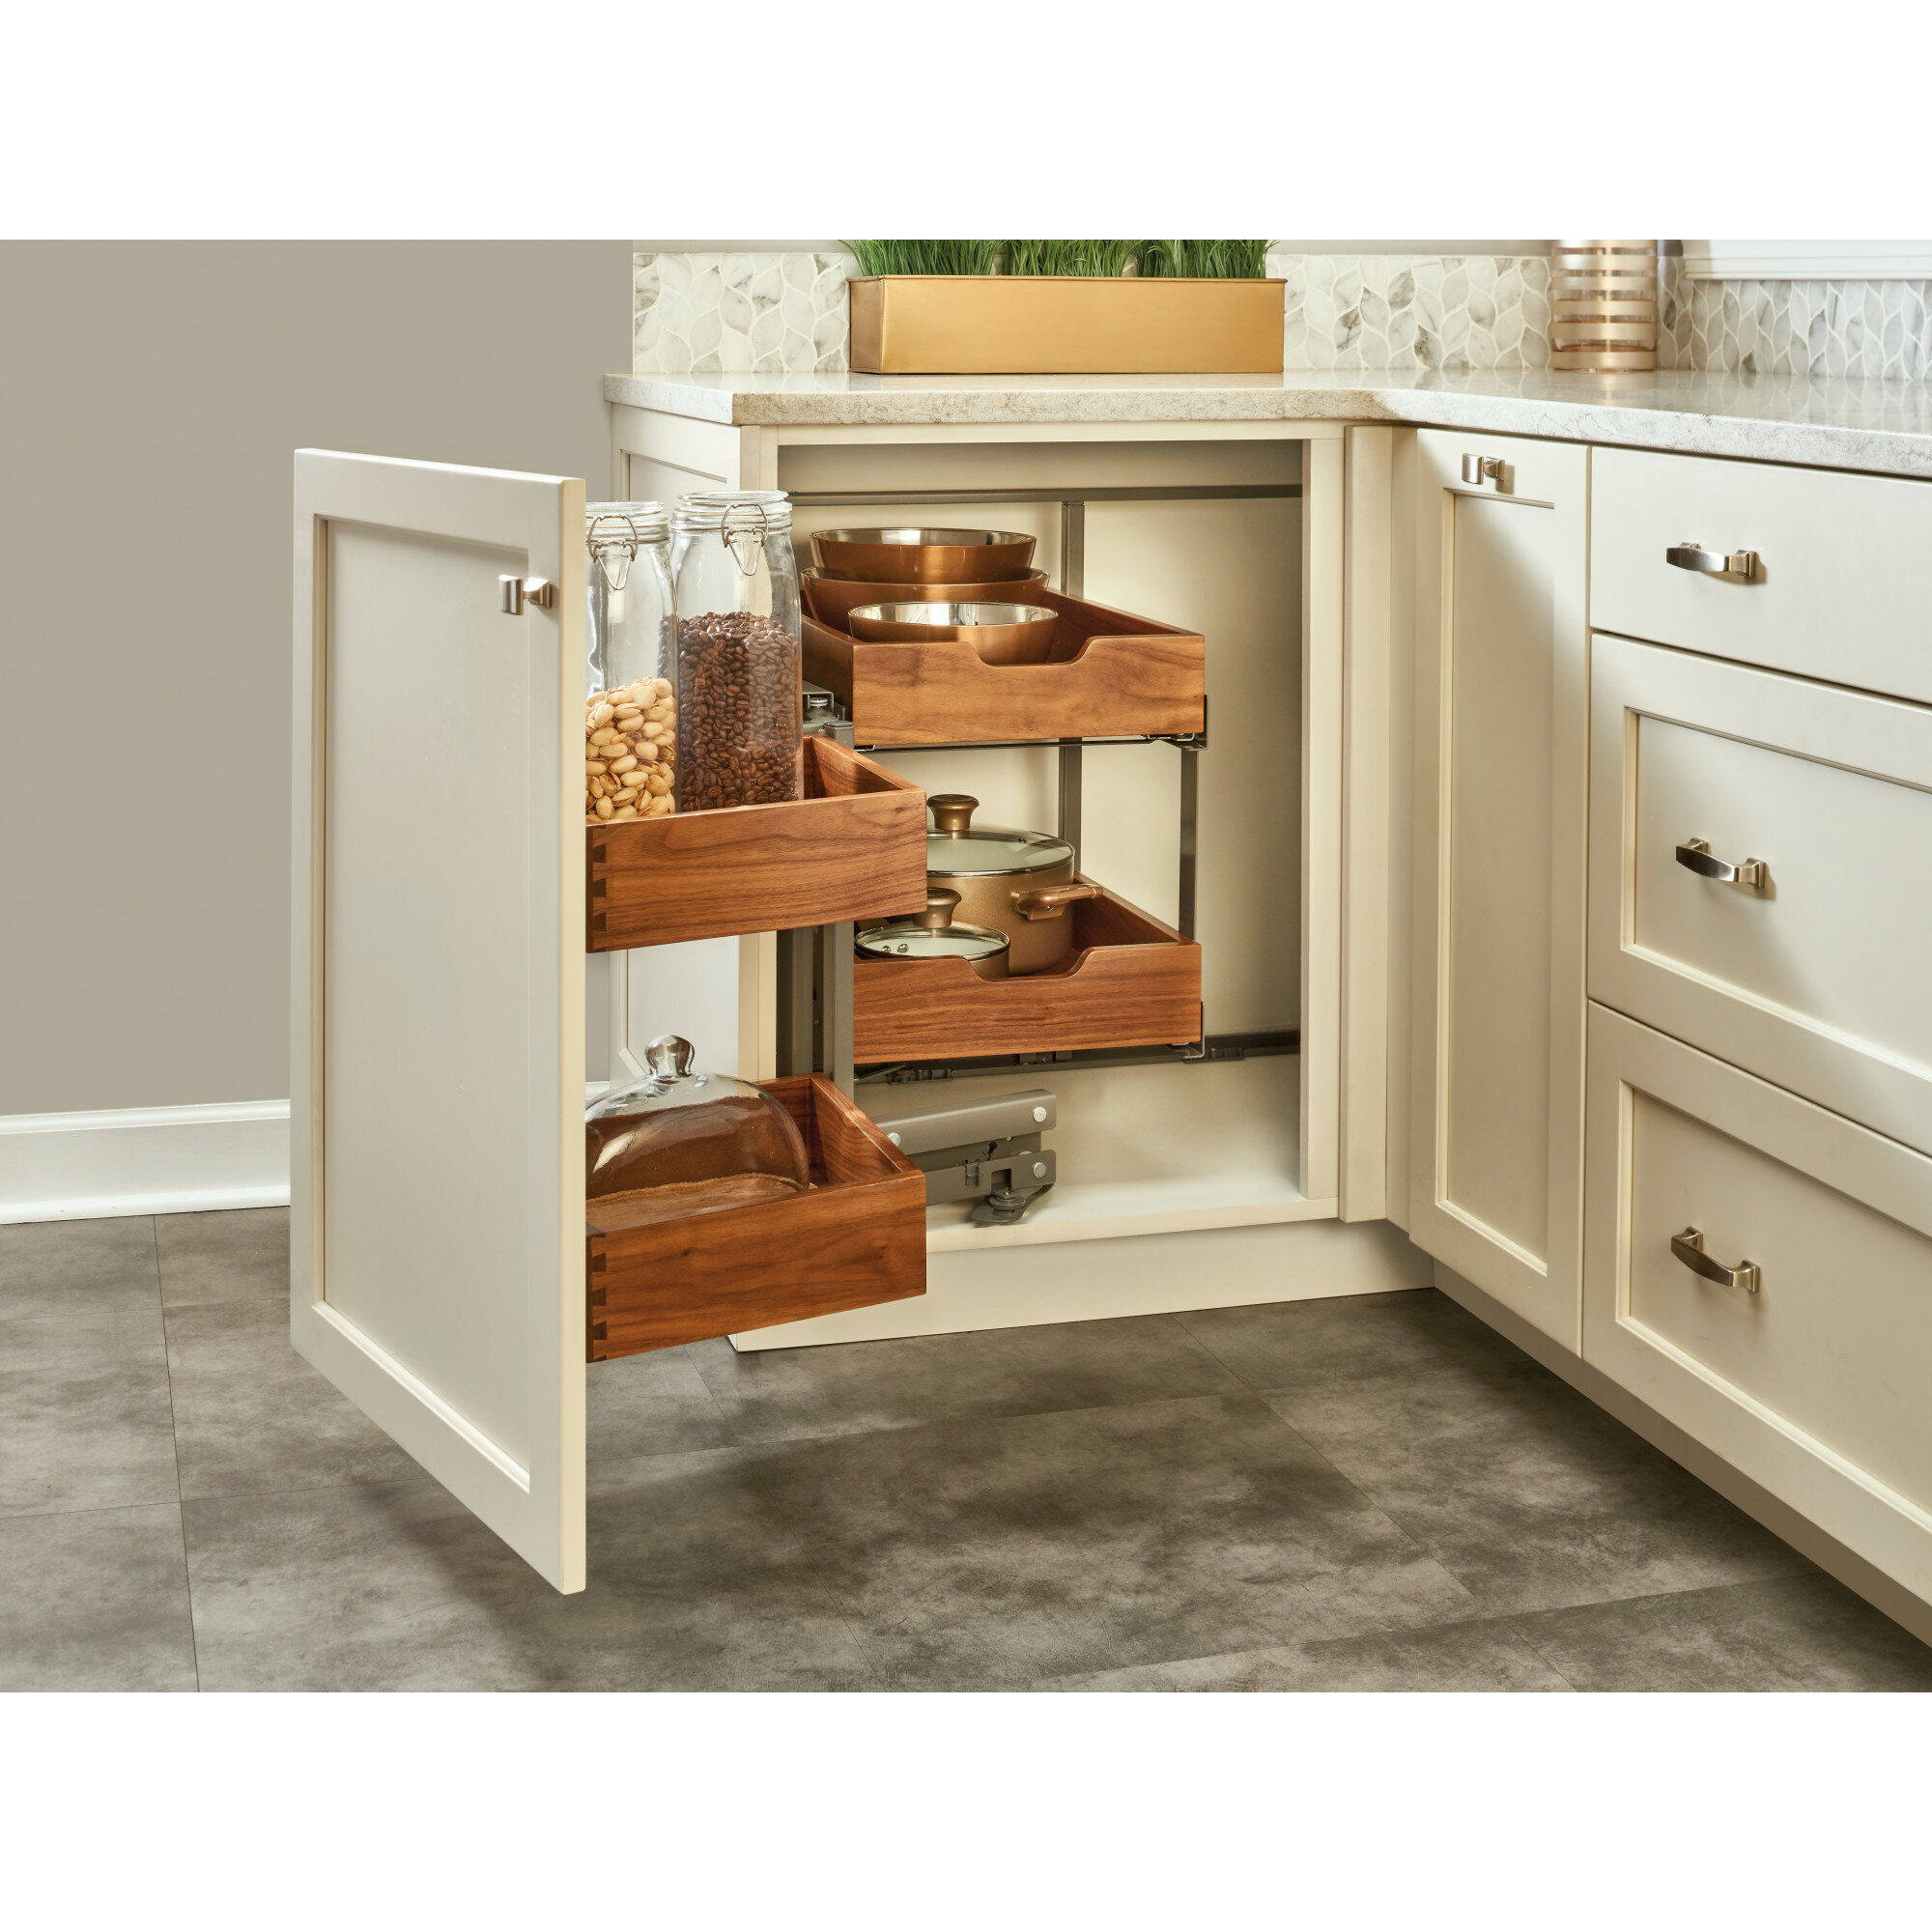 Blind Corner Cabinet Organizer Pull Out Pantry